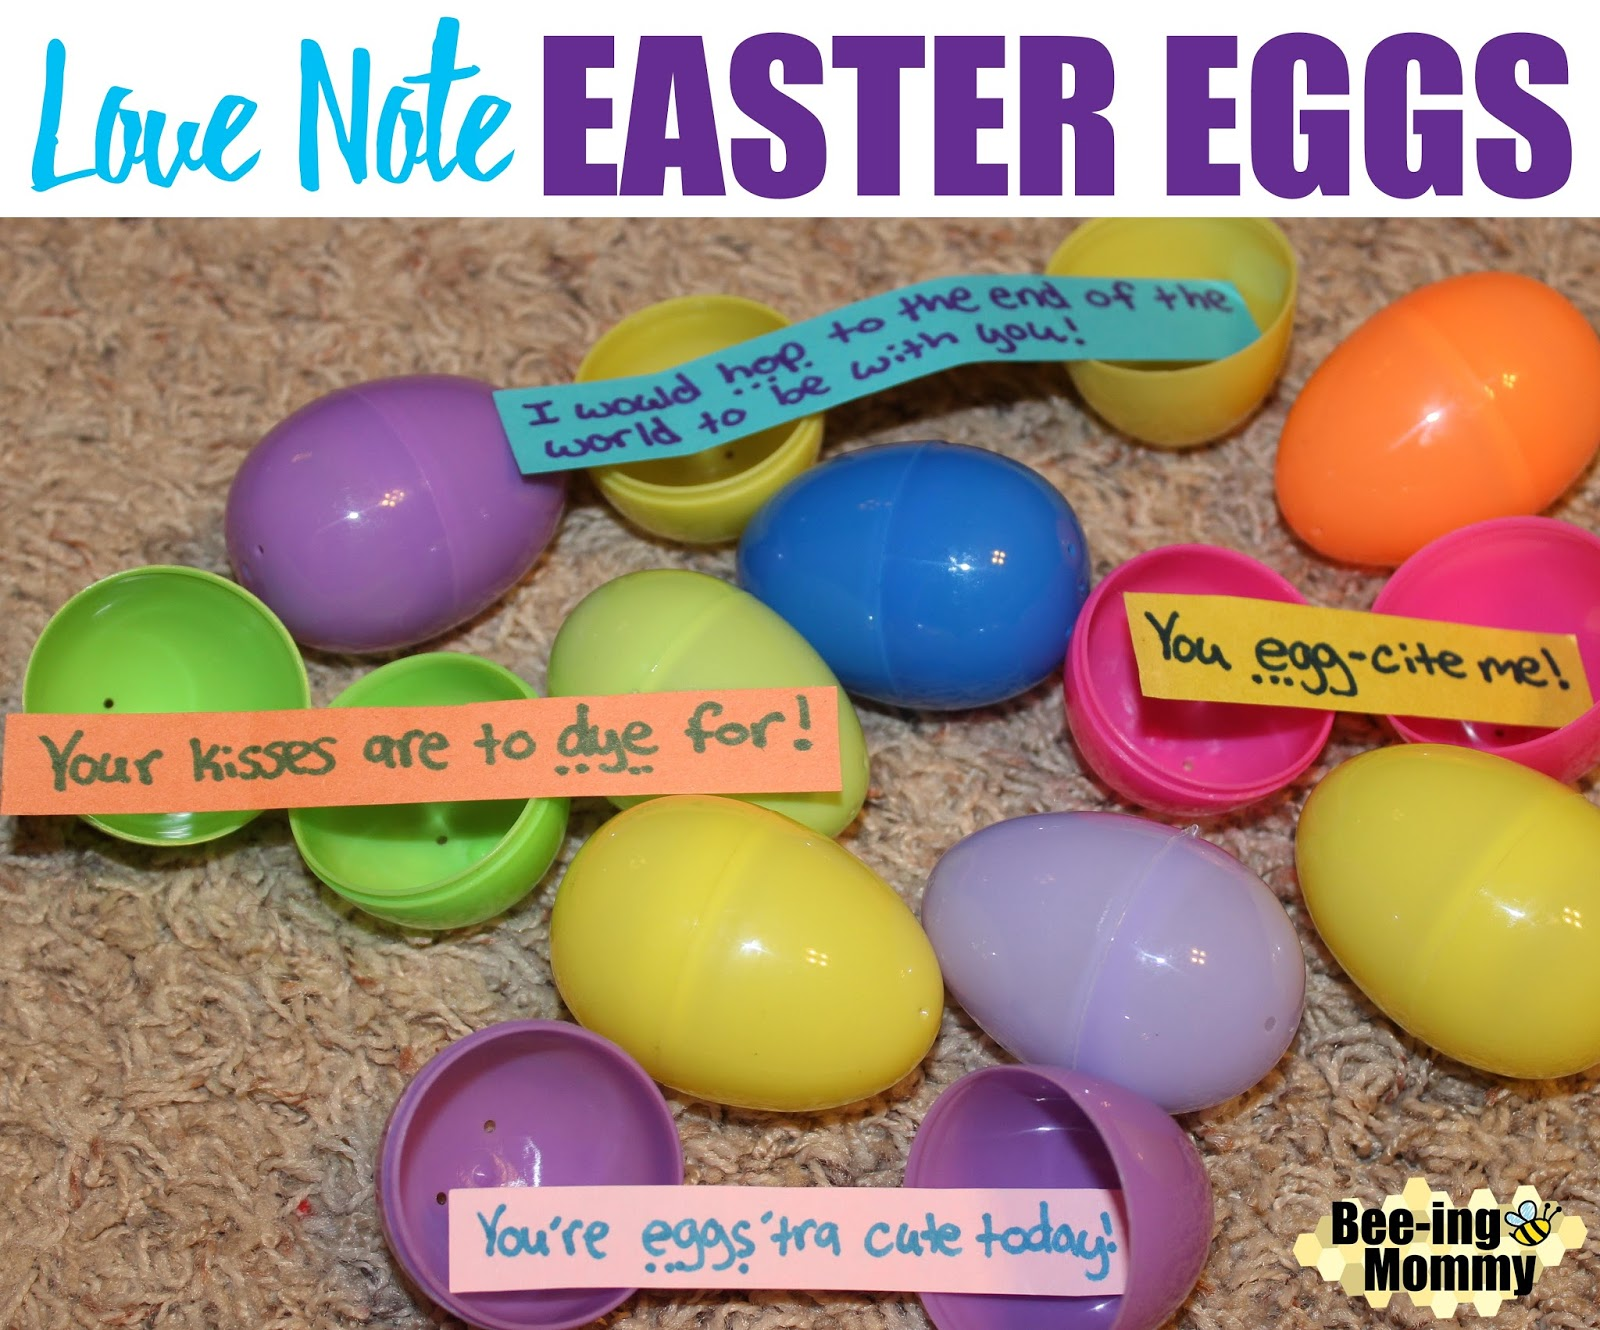 Bee ing mommy blog love note easter eggs baby feet bunny painting easter easter egg sayings love note easter eggs egg hunt adult eggs negle Image collections